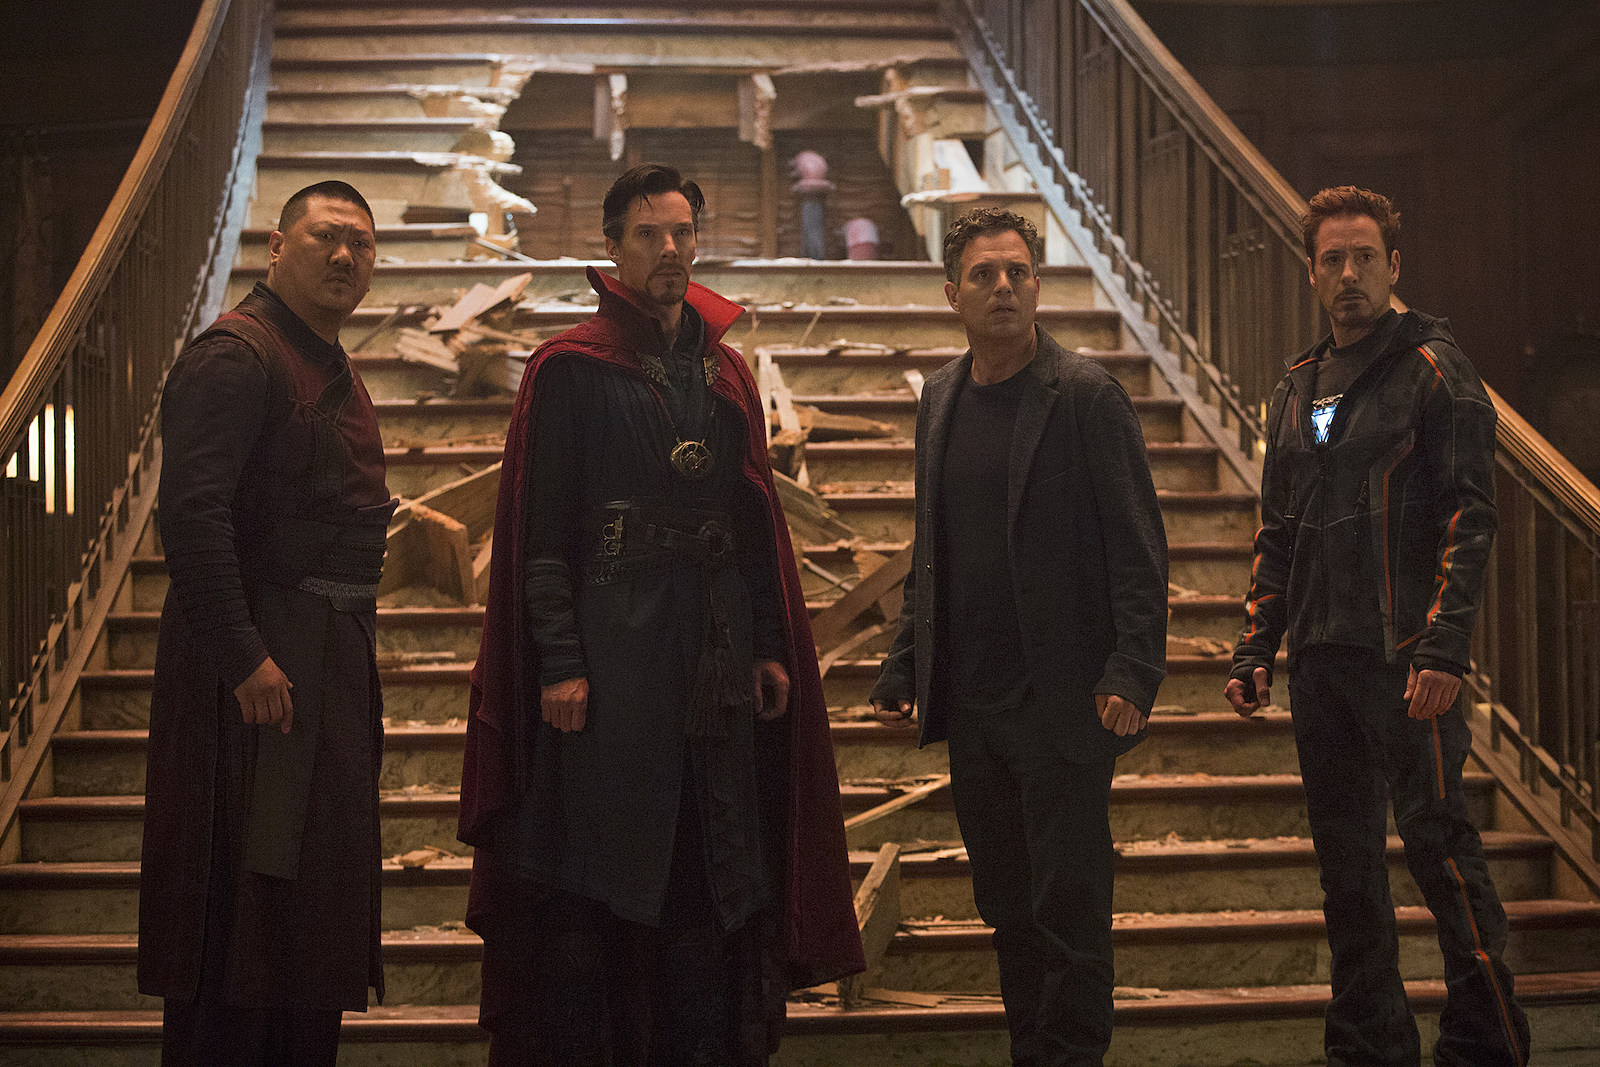 Avengers  Infinity War  First Reviews Are In   Read Them Now  First  Avengers  Infinity War  Reviews Love the Characters and  Monumental   Action